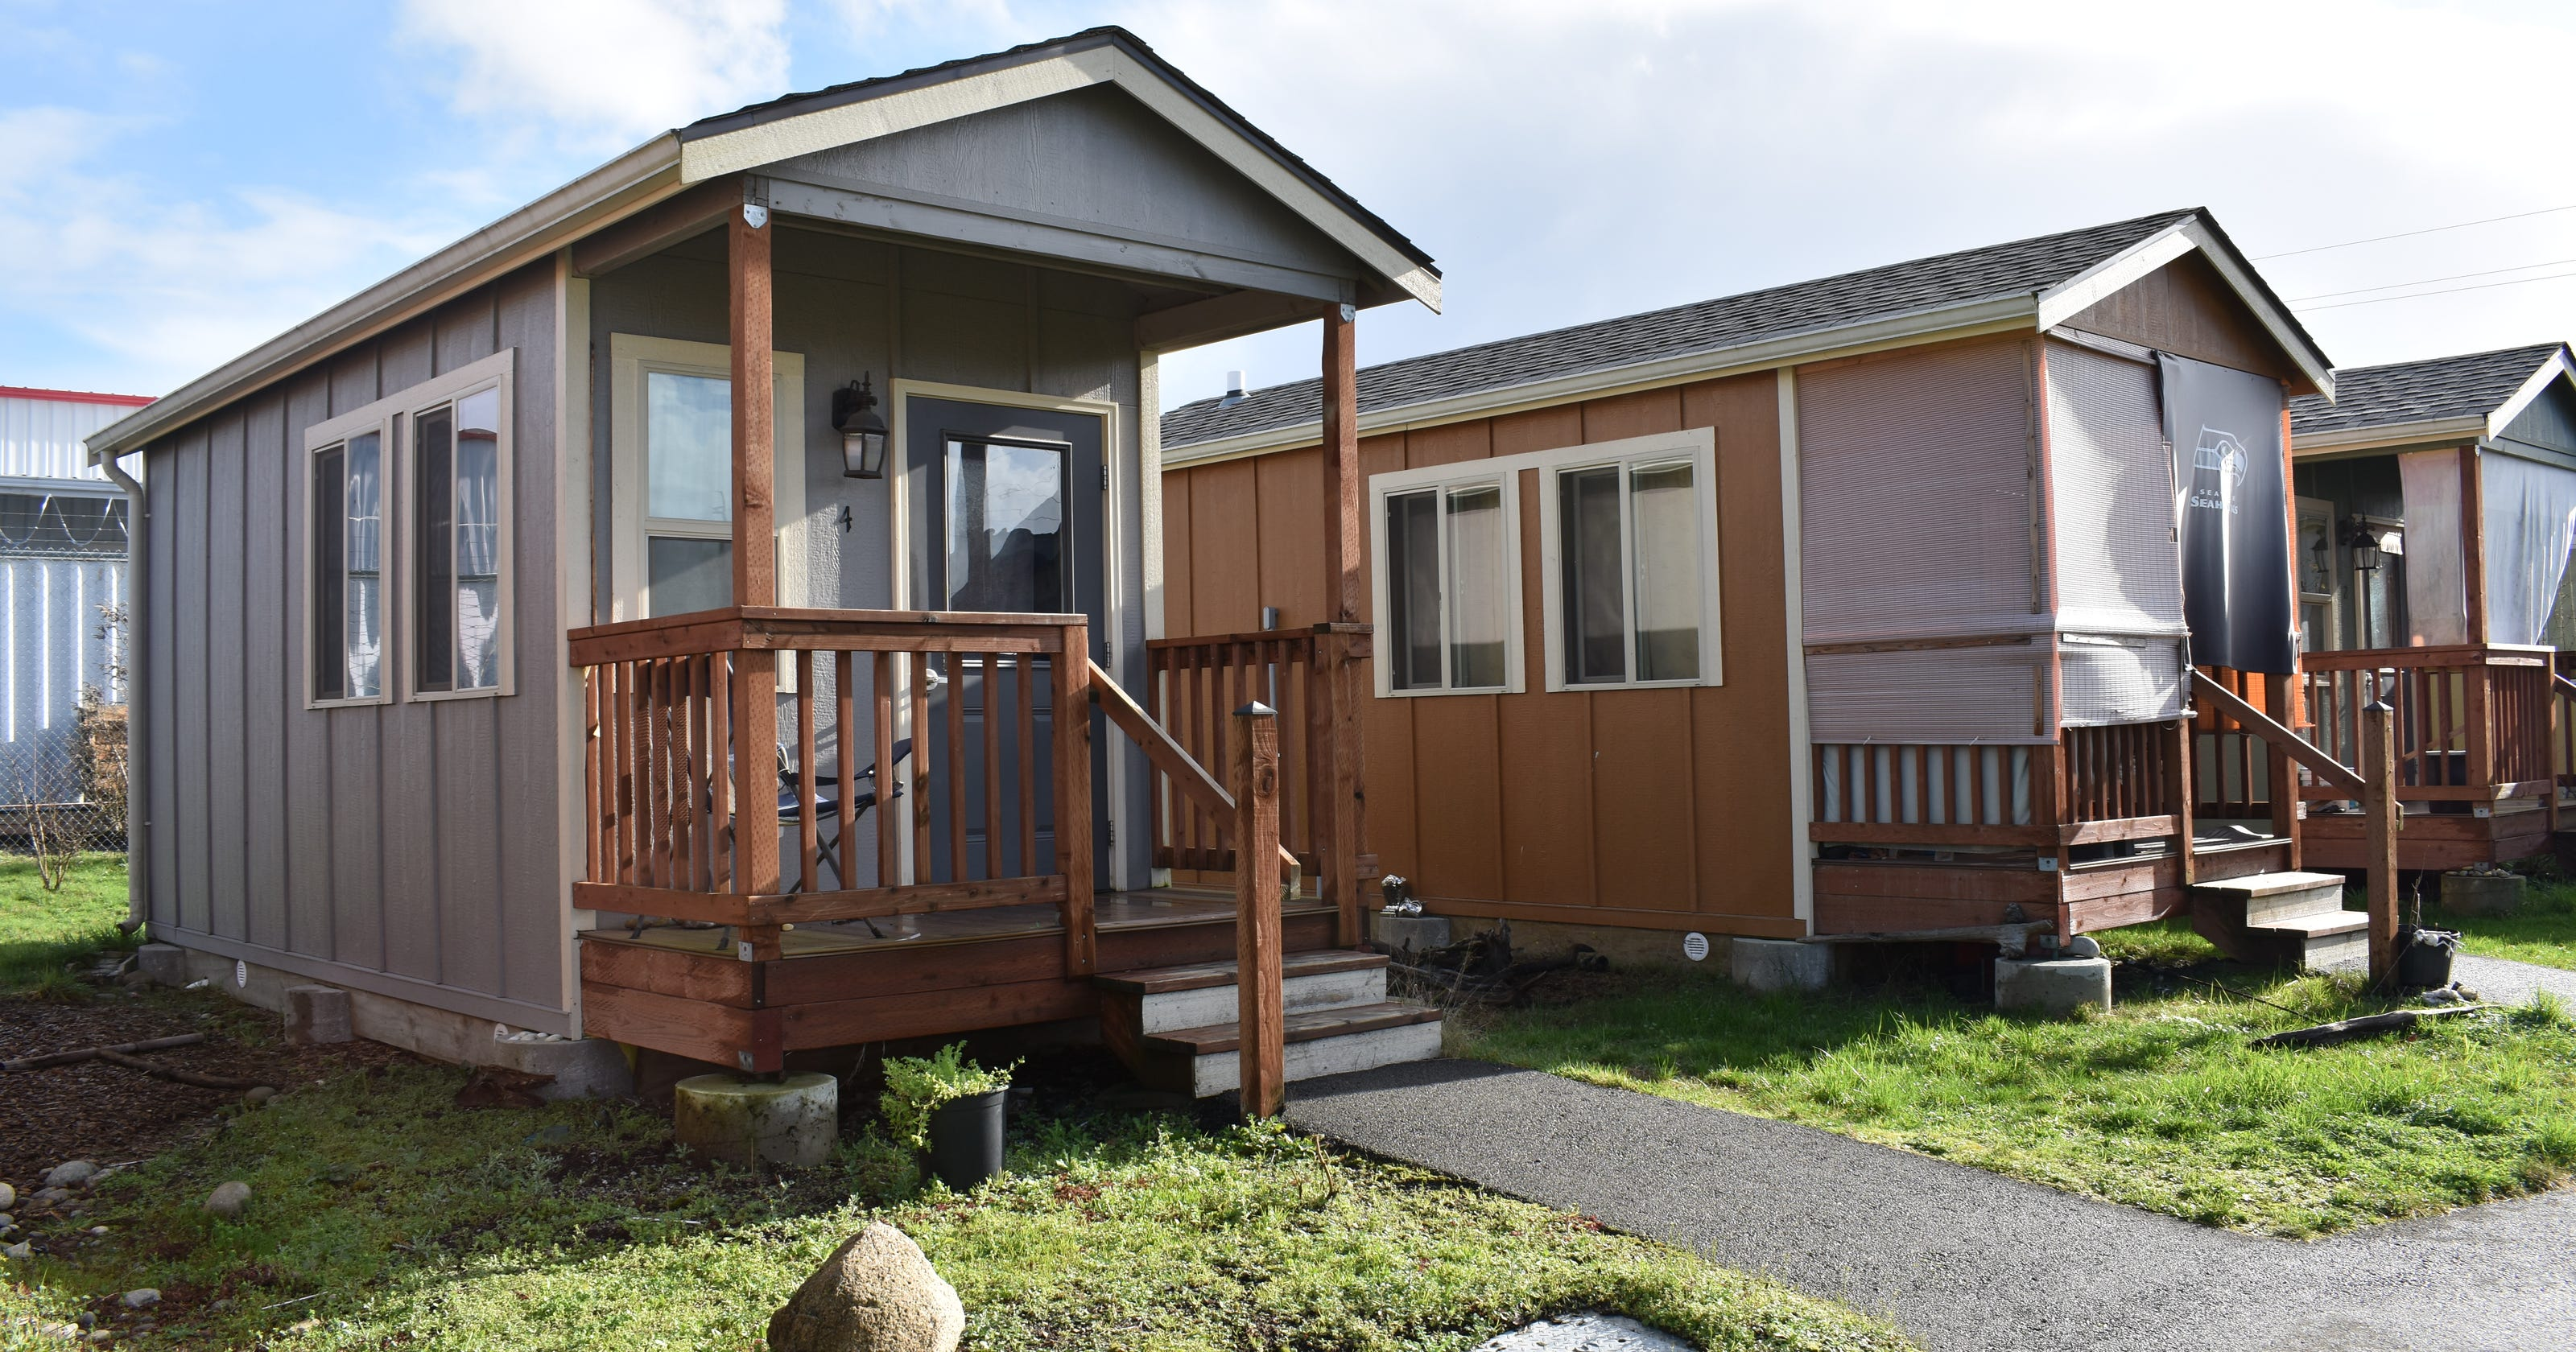 Tiny Homes For Homeless Vets Coming To Shelton